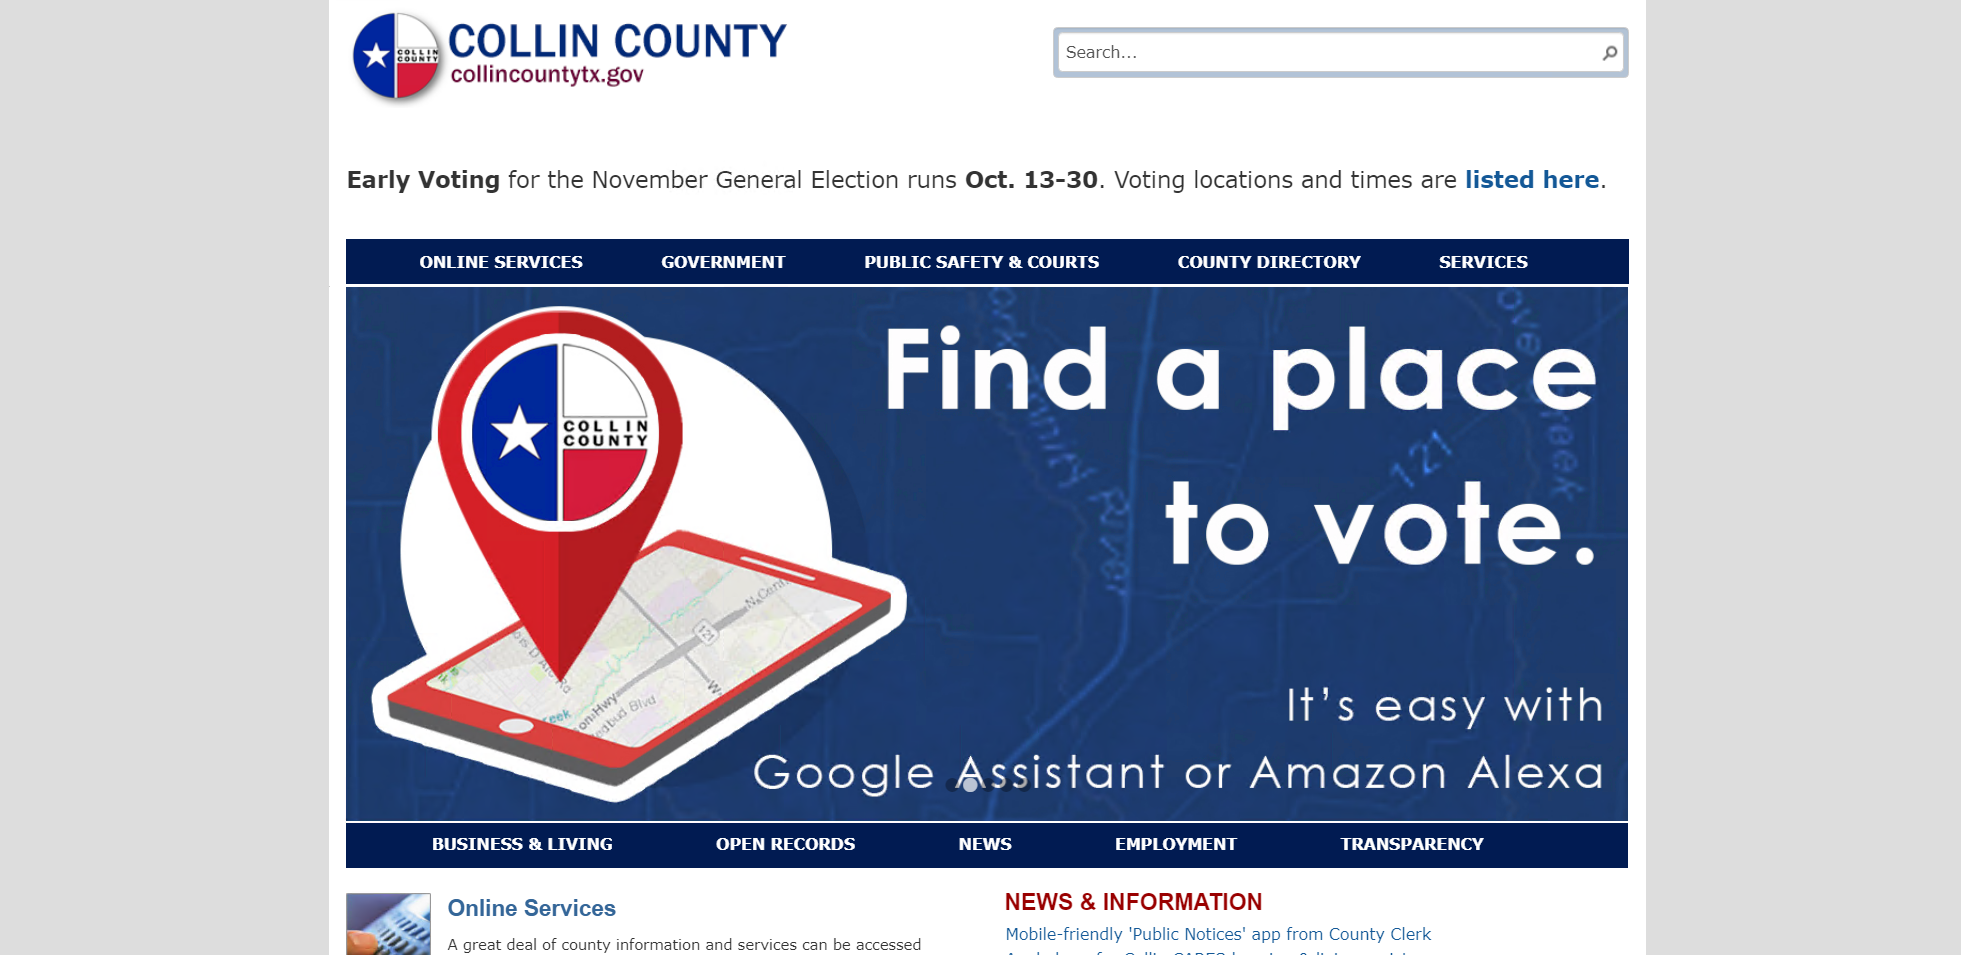 Collin County: Find a place to vote with Google Assistant or Alexa